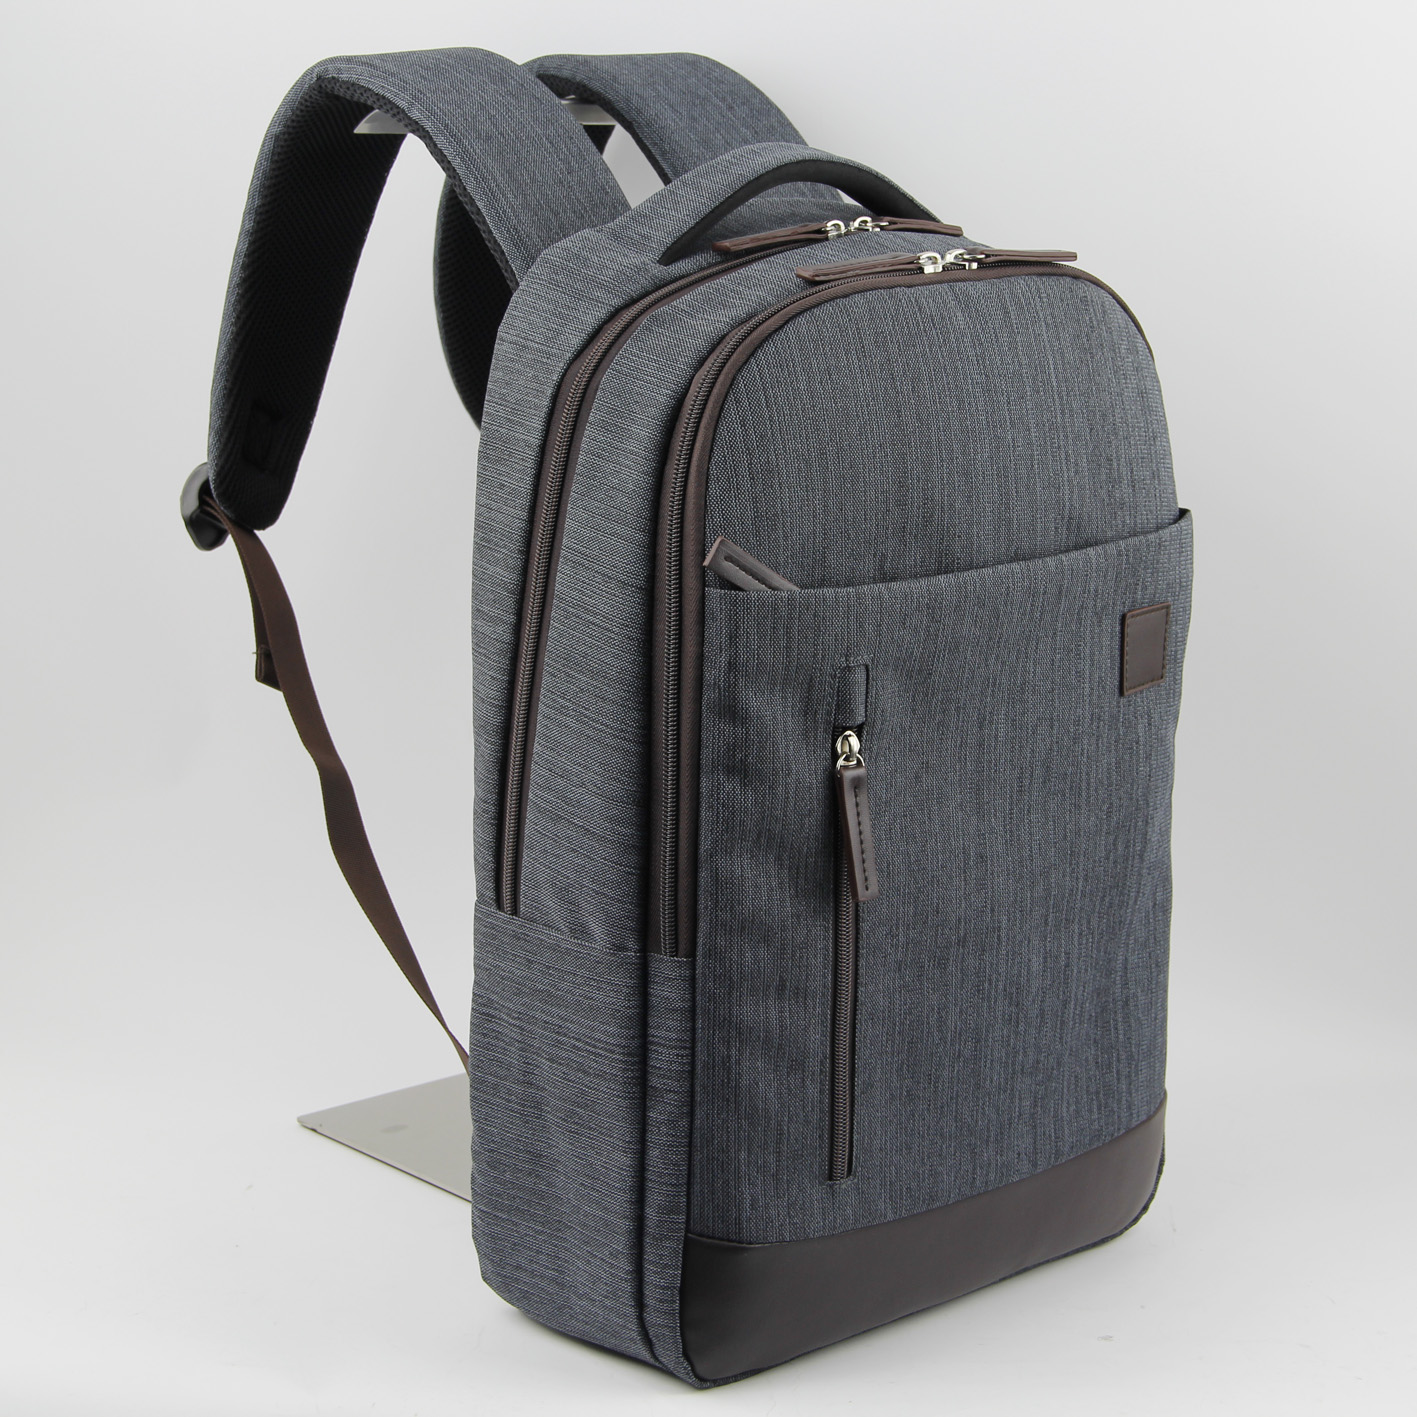 Nylon leisure travel backpack